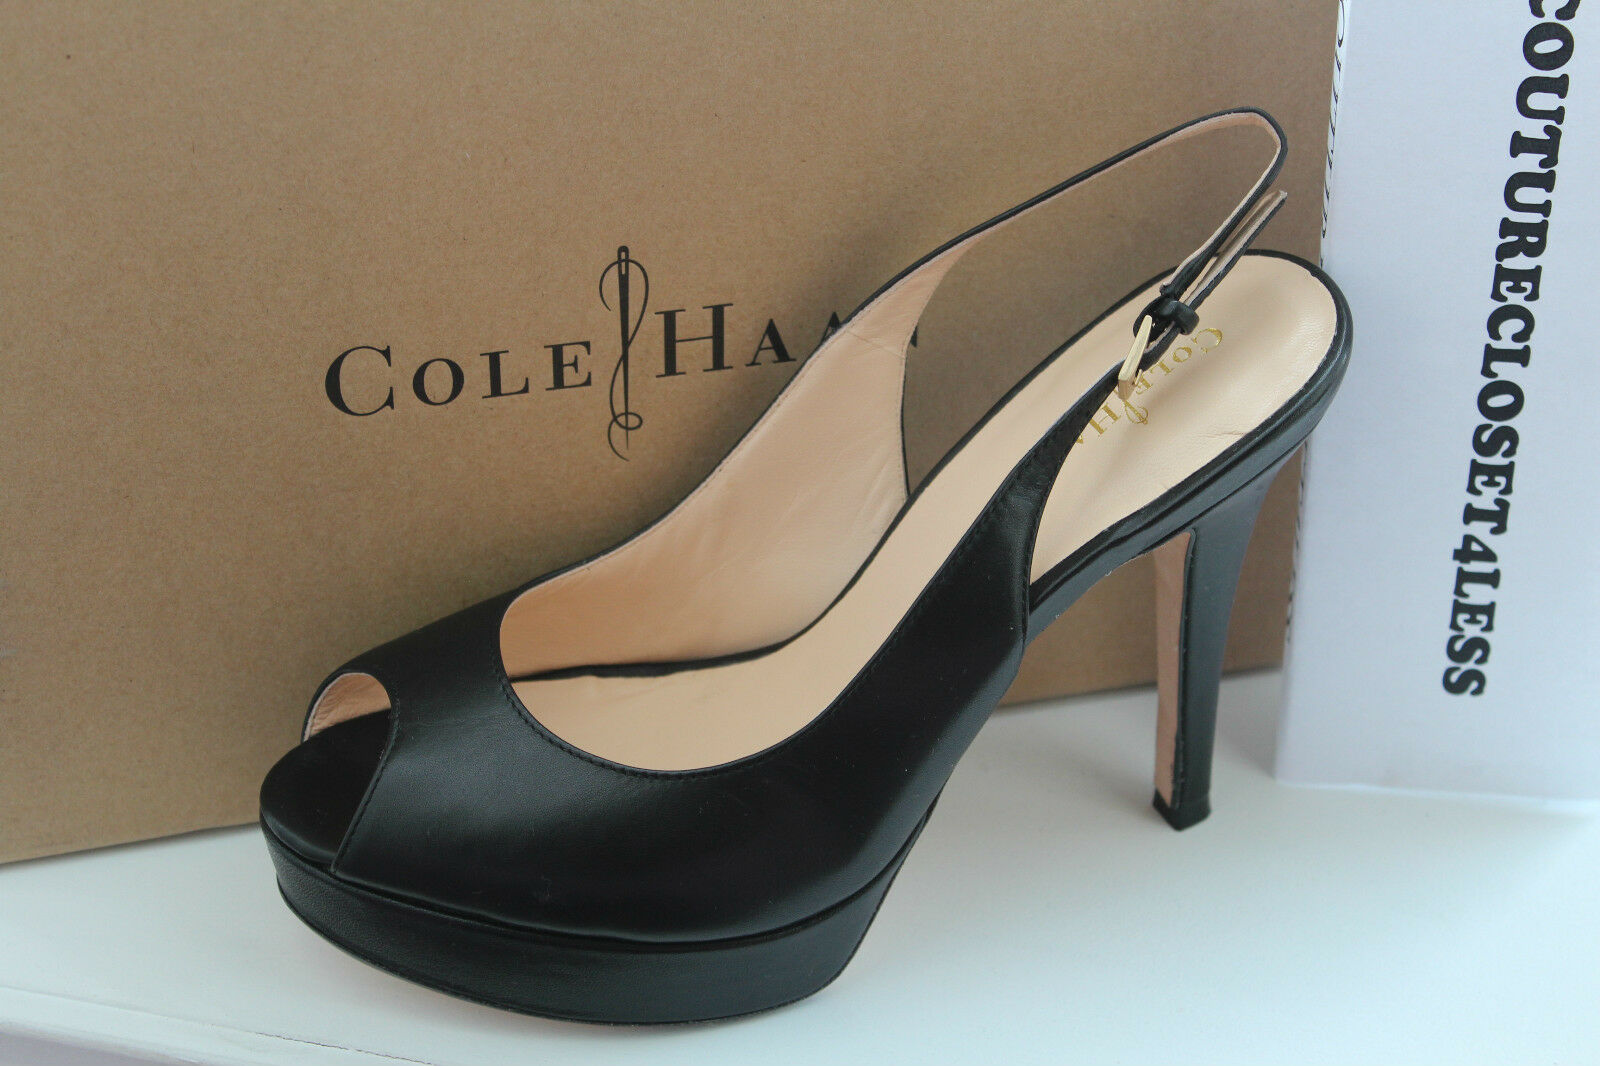 COLE HAAN MARIELA AIR OT SLING schwarz LEATHER LEATHER LEATHER  8.5us  328 609319